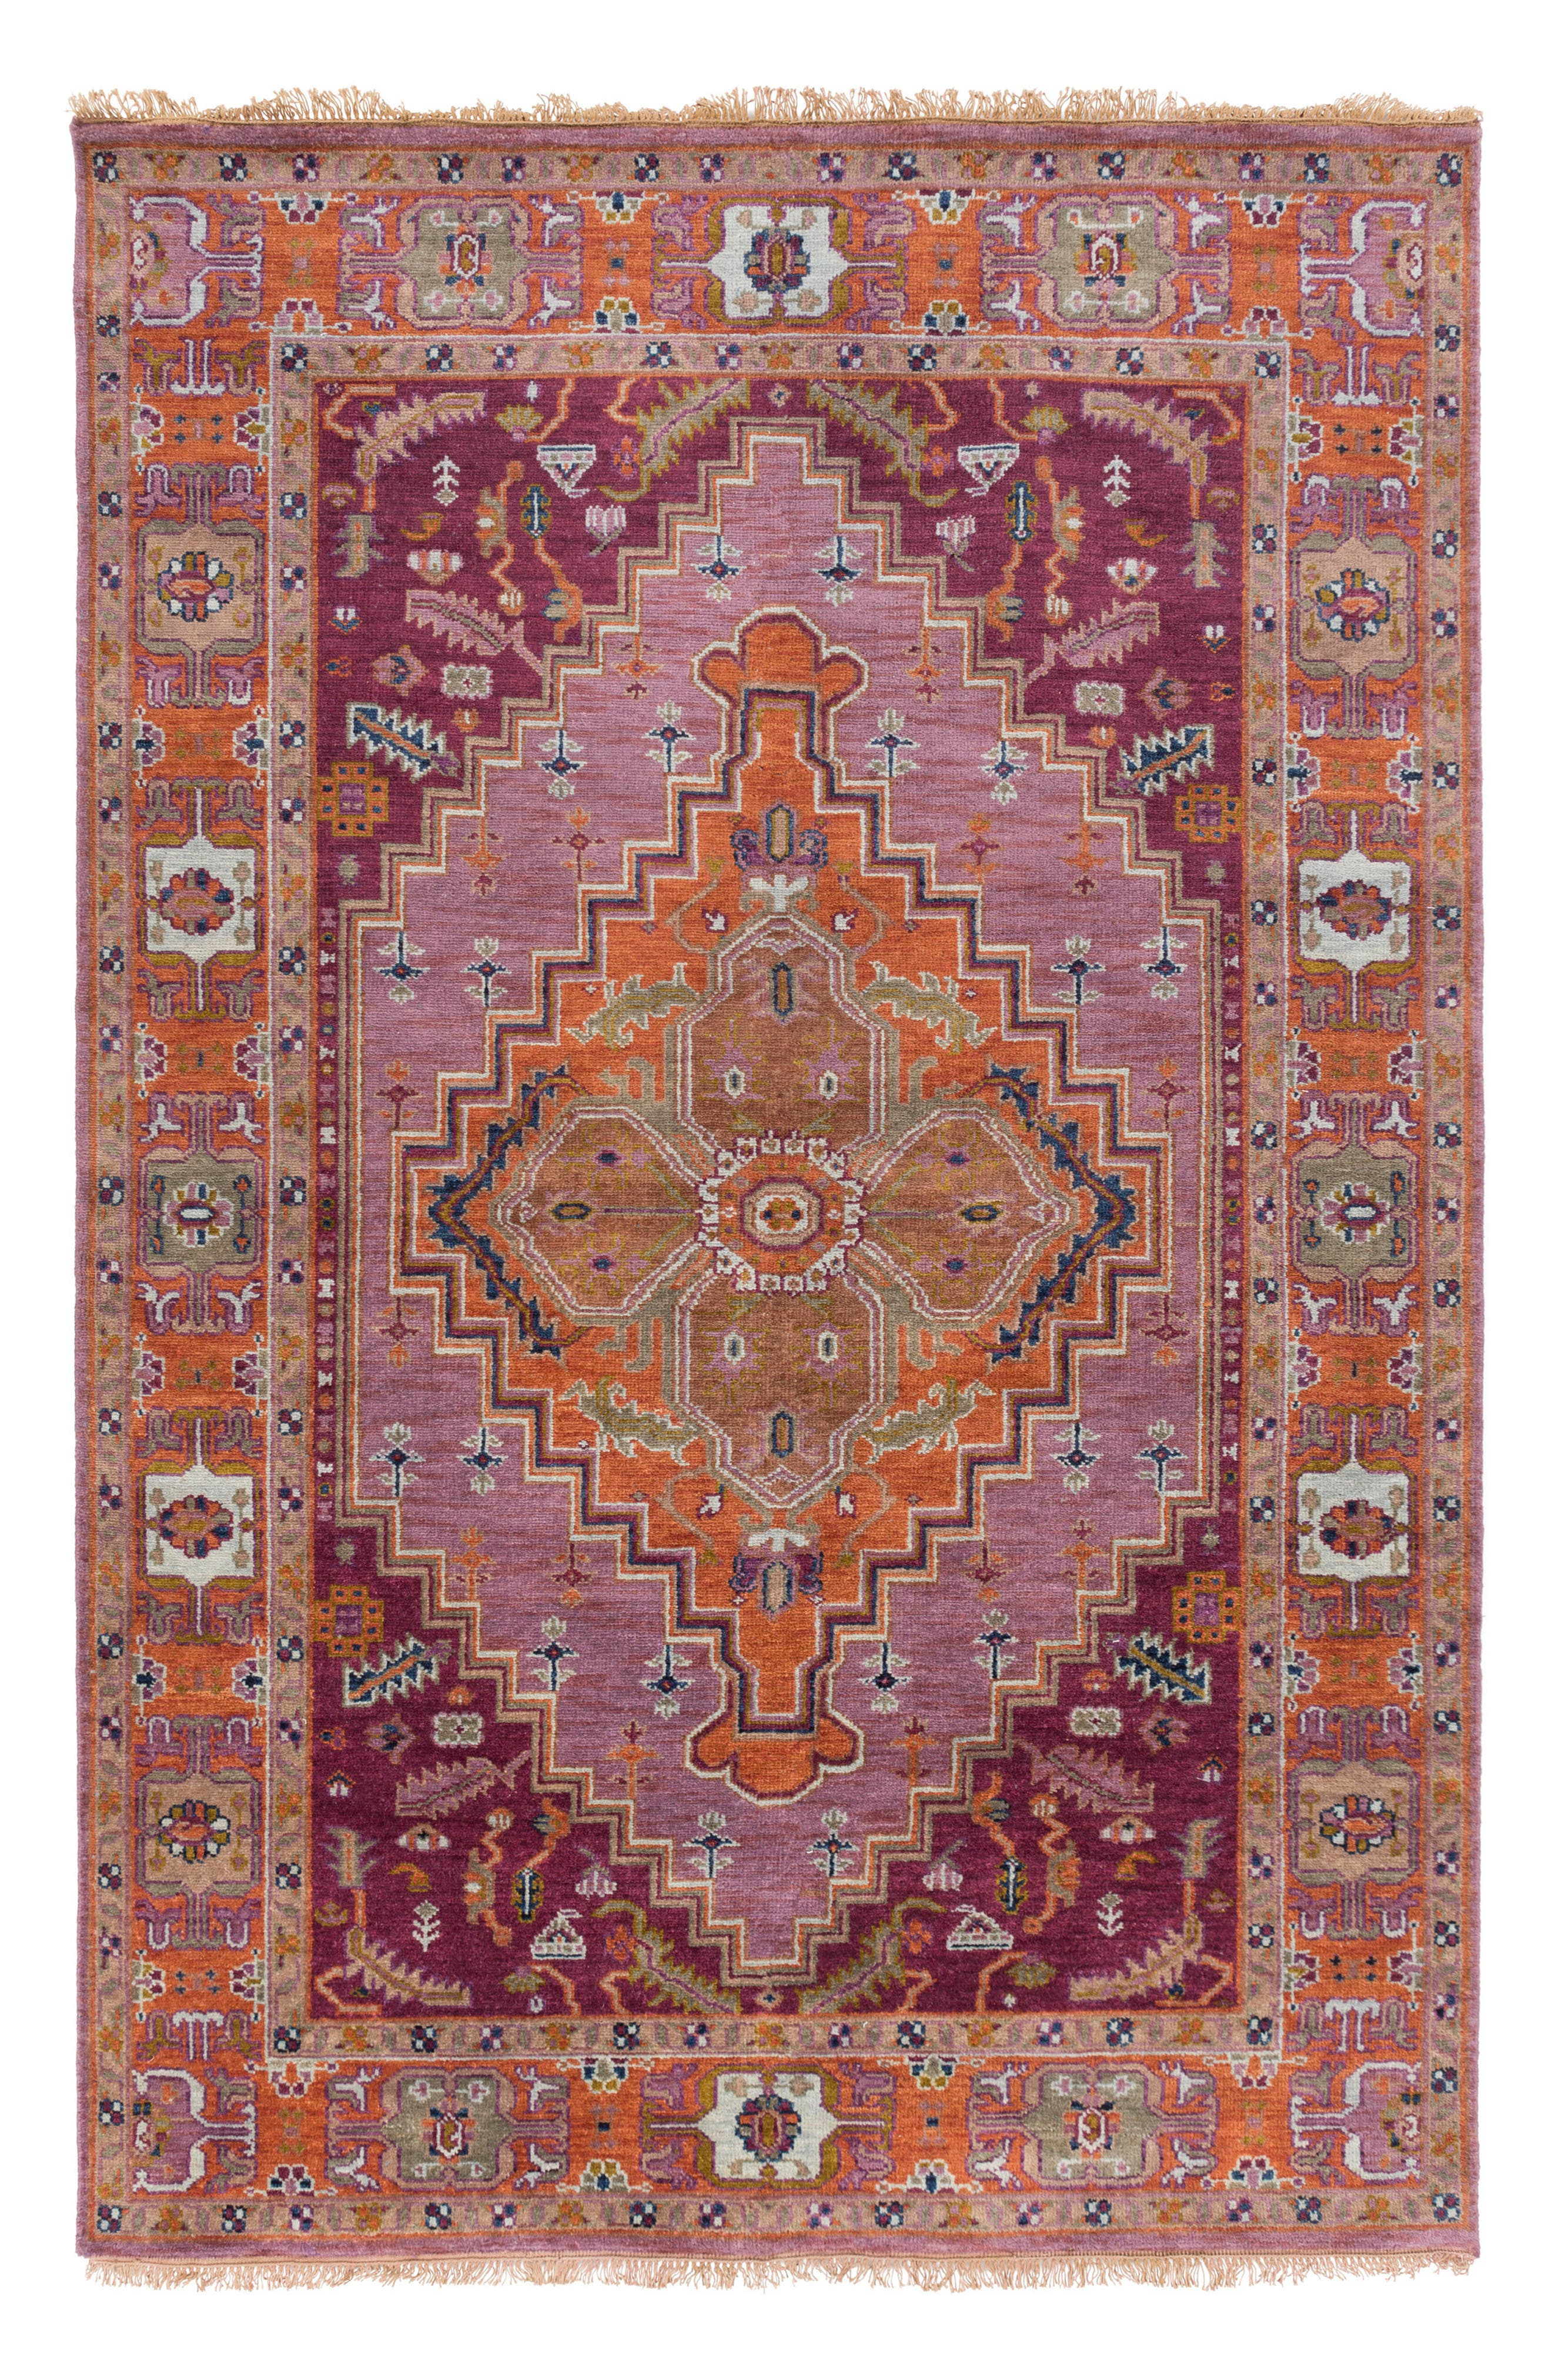 Alternate Image 1 Selected - Surya Home Zeus Global Wool Rug